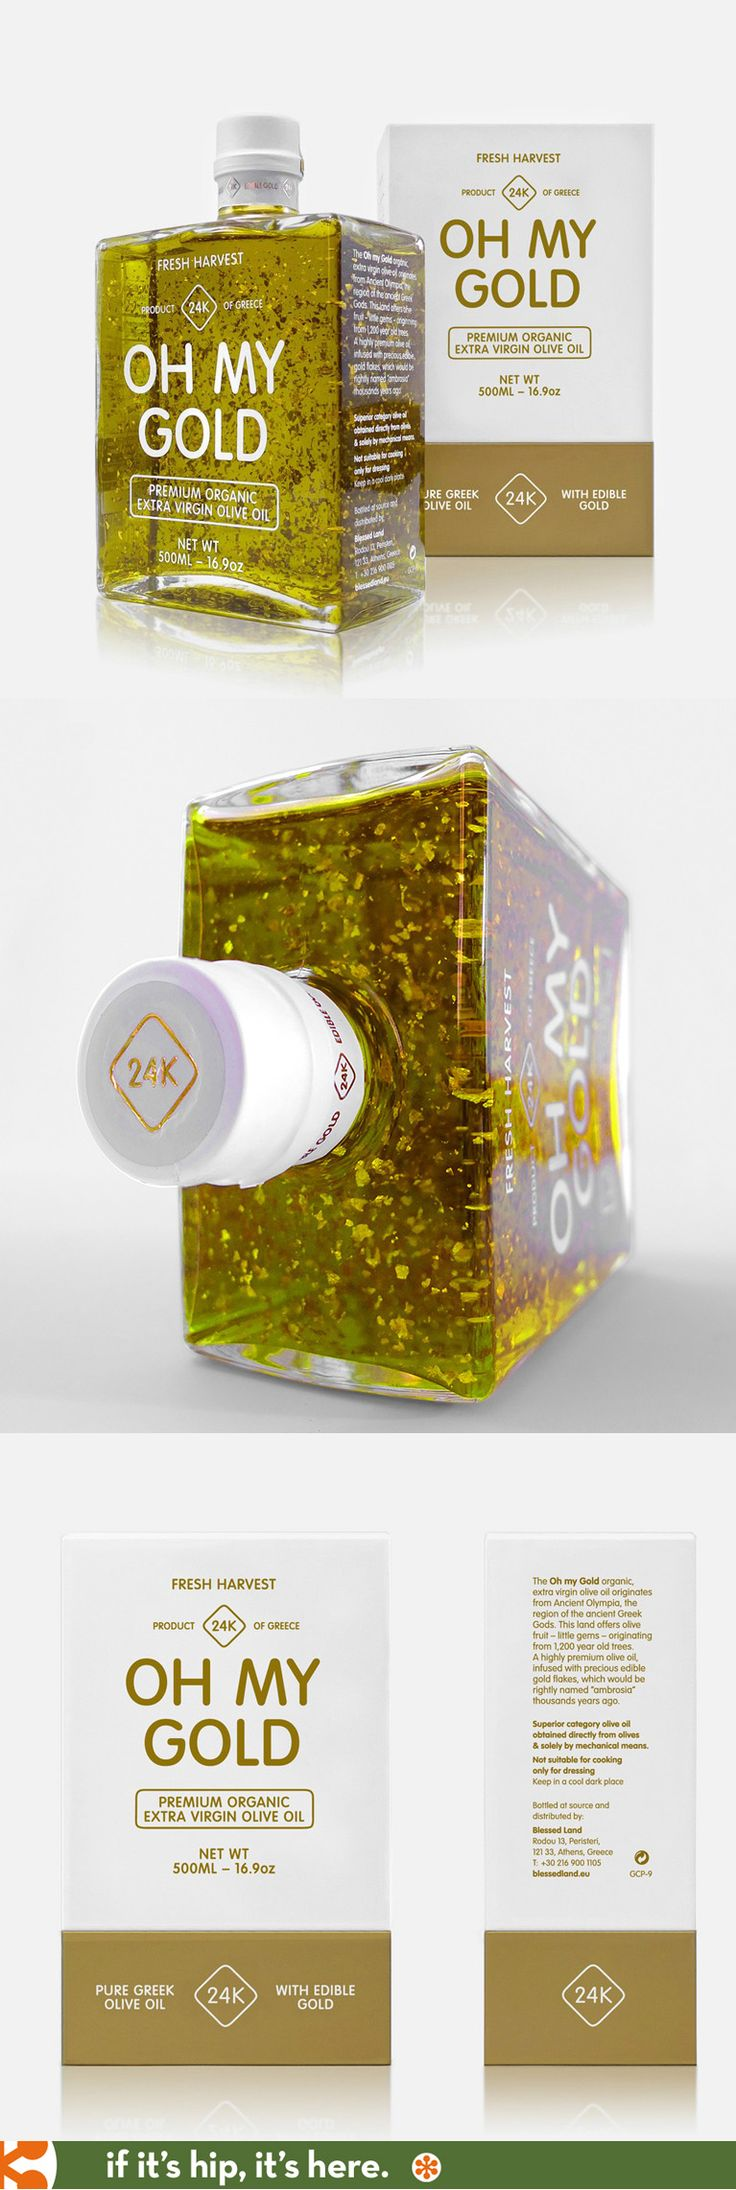 Fresh Harvest Oh My Gold Premium Extra Virgin Olive Oil with edible 24k gold flakes. Package design by G Studio.